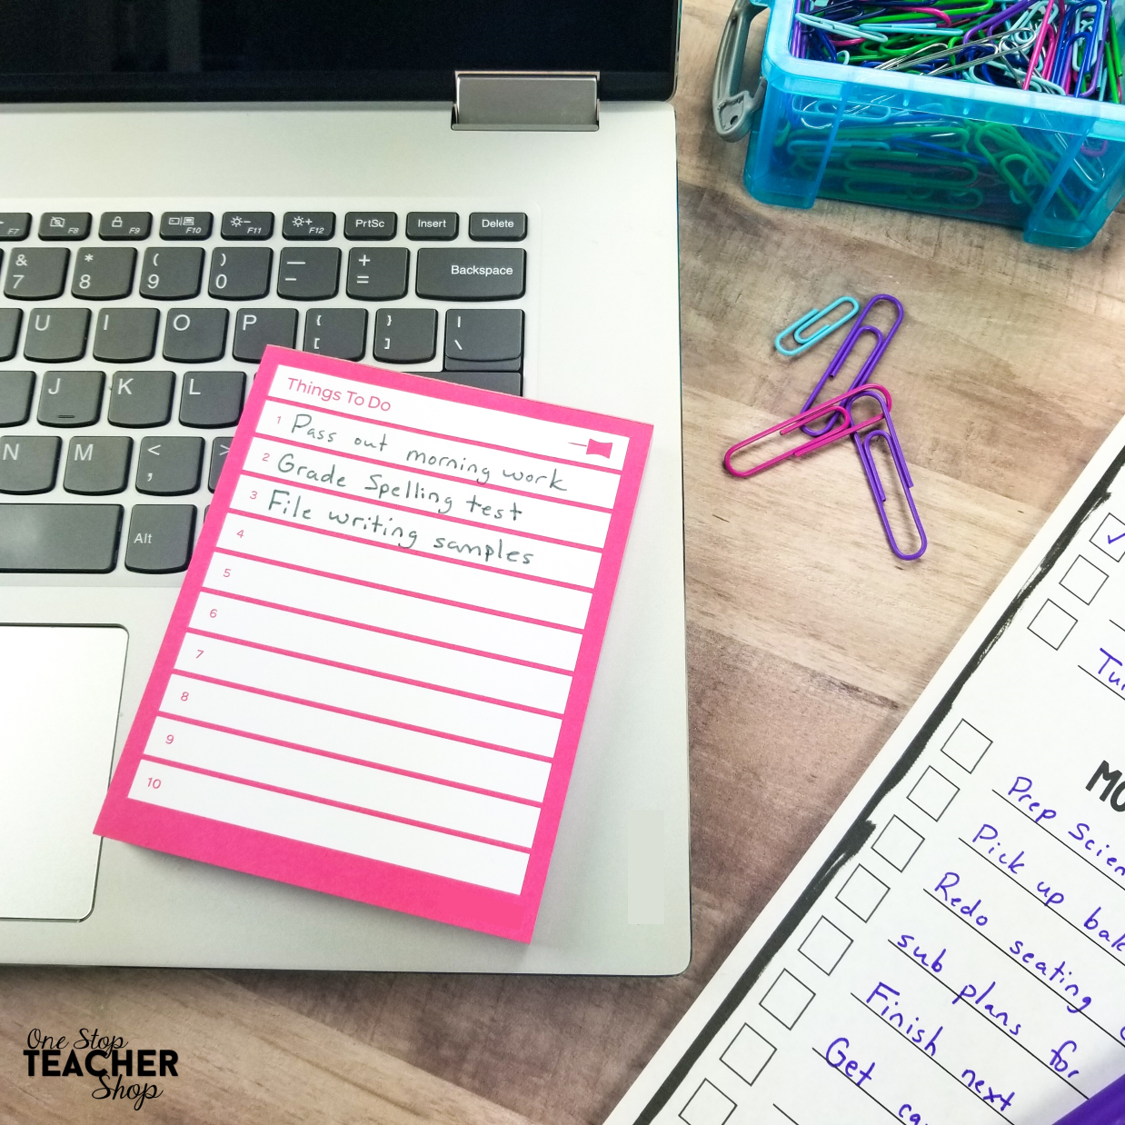 Time management can be tough for teachers, and getting everything done can seem impossible. Here are my top 10 tips for saving time in the classroom and shaving hours off your work week. | Time management for Teachers | To Do lists